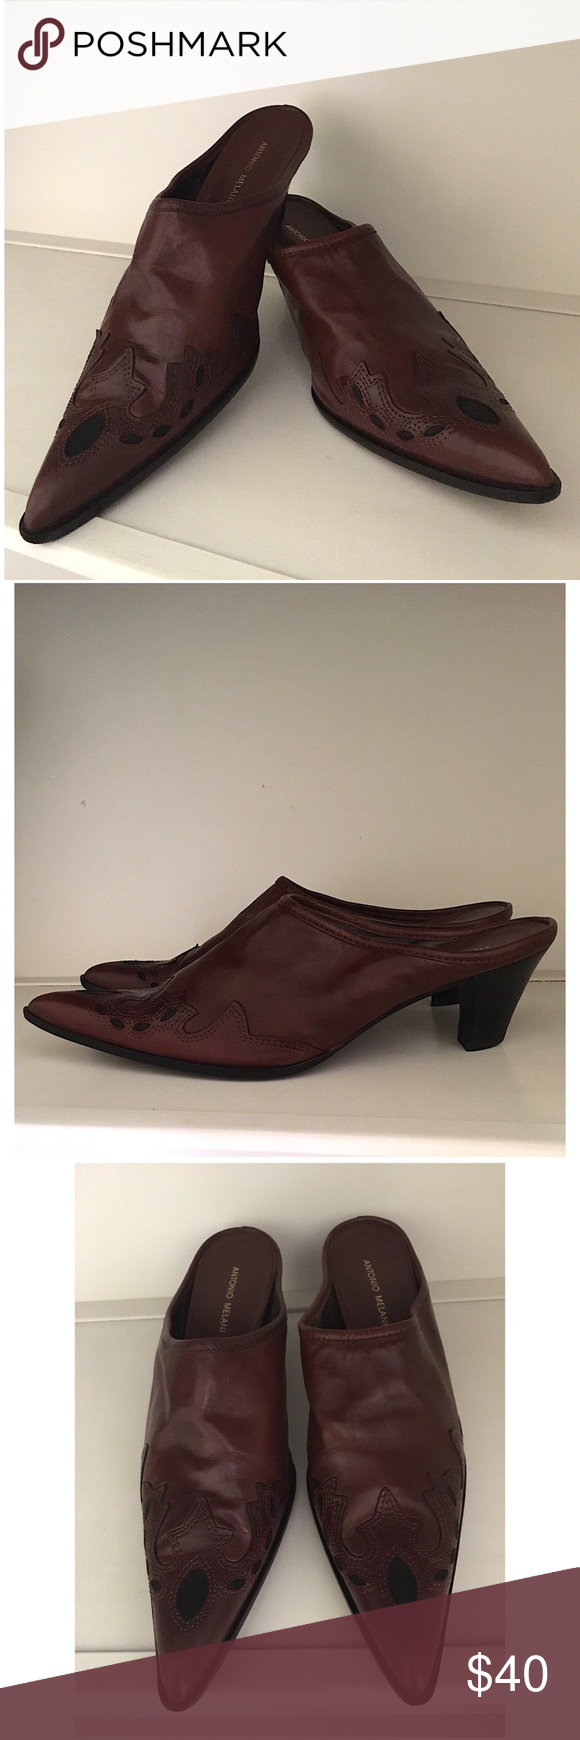 52e81a50d38 ANTONIO MELANI WESTERN MULES Gorgeous Antonio Melani Western Style Mules.  Only showing wear to the